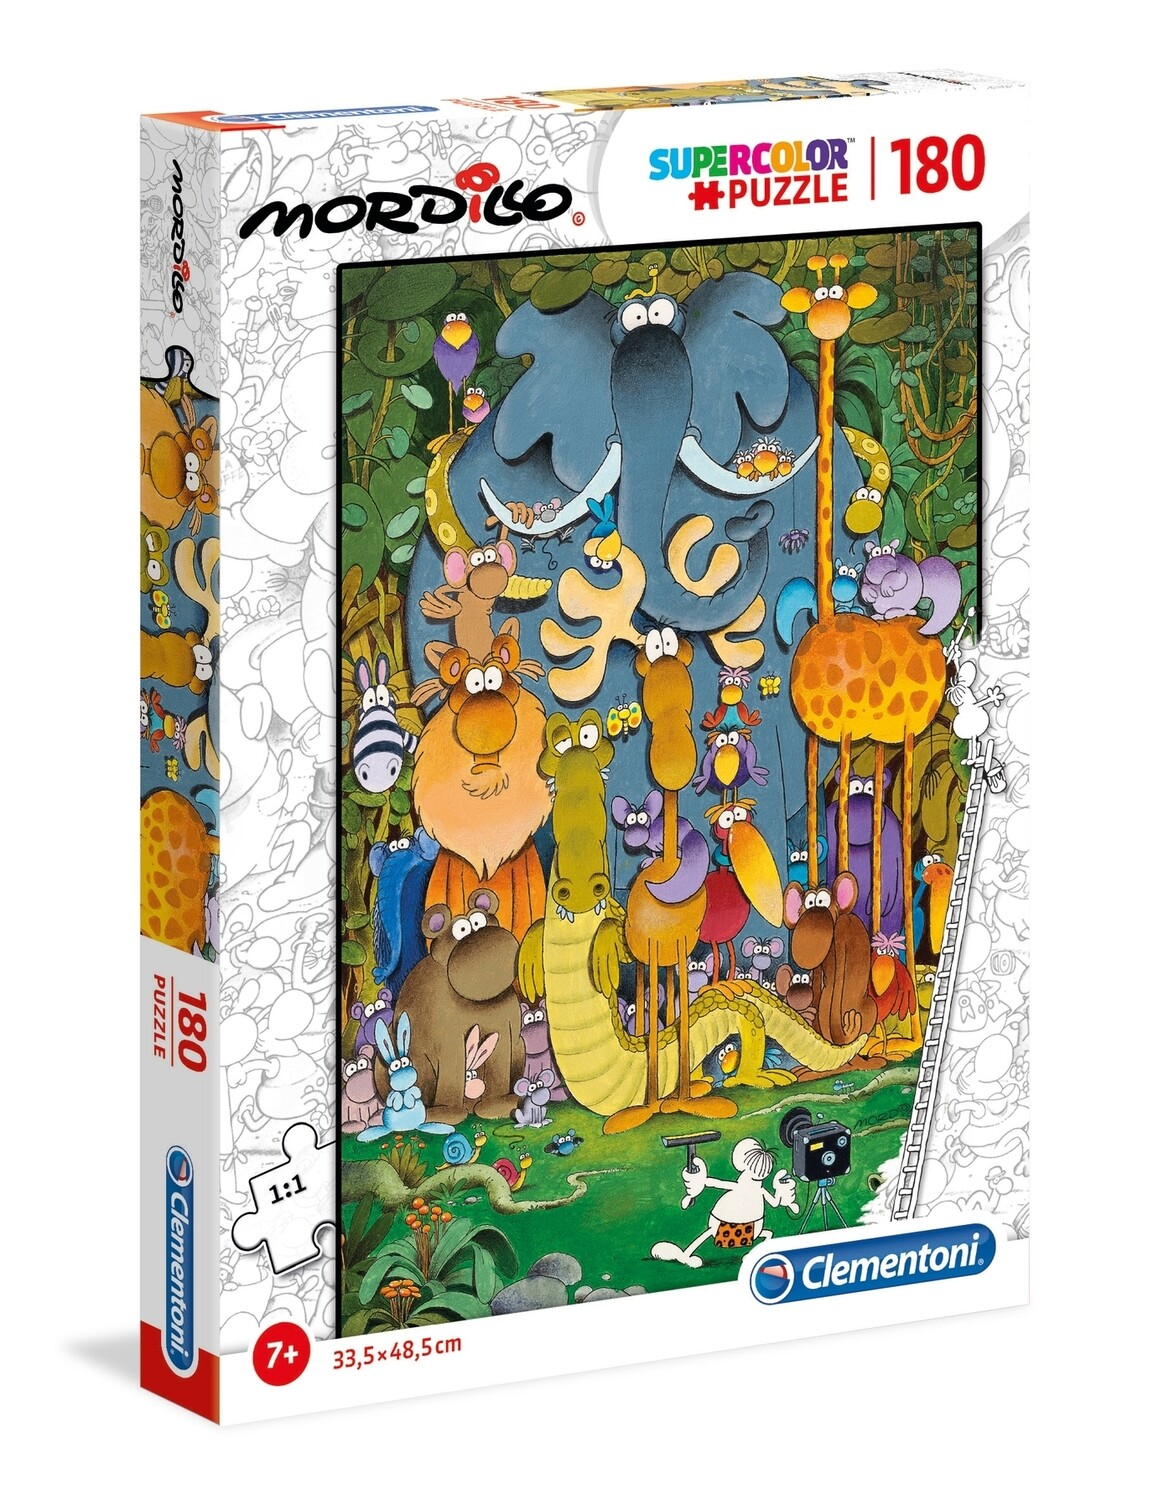 PUZZLE Super 180 pcs Mordillo - The Picture - CLEMENTONI